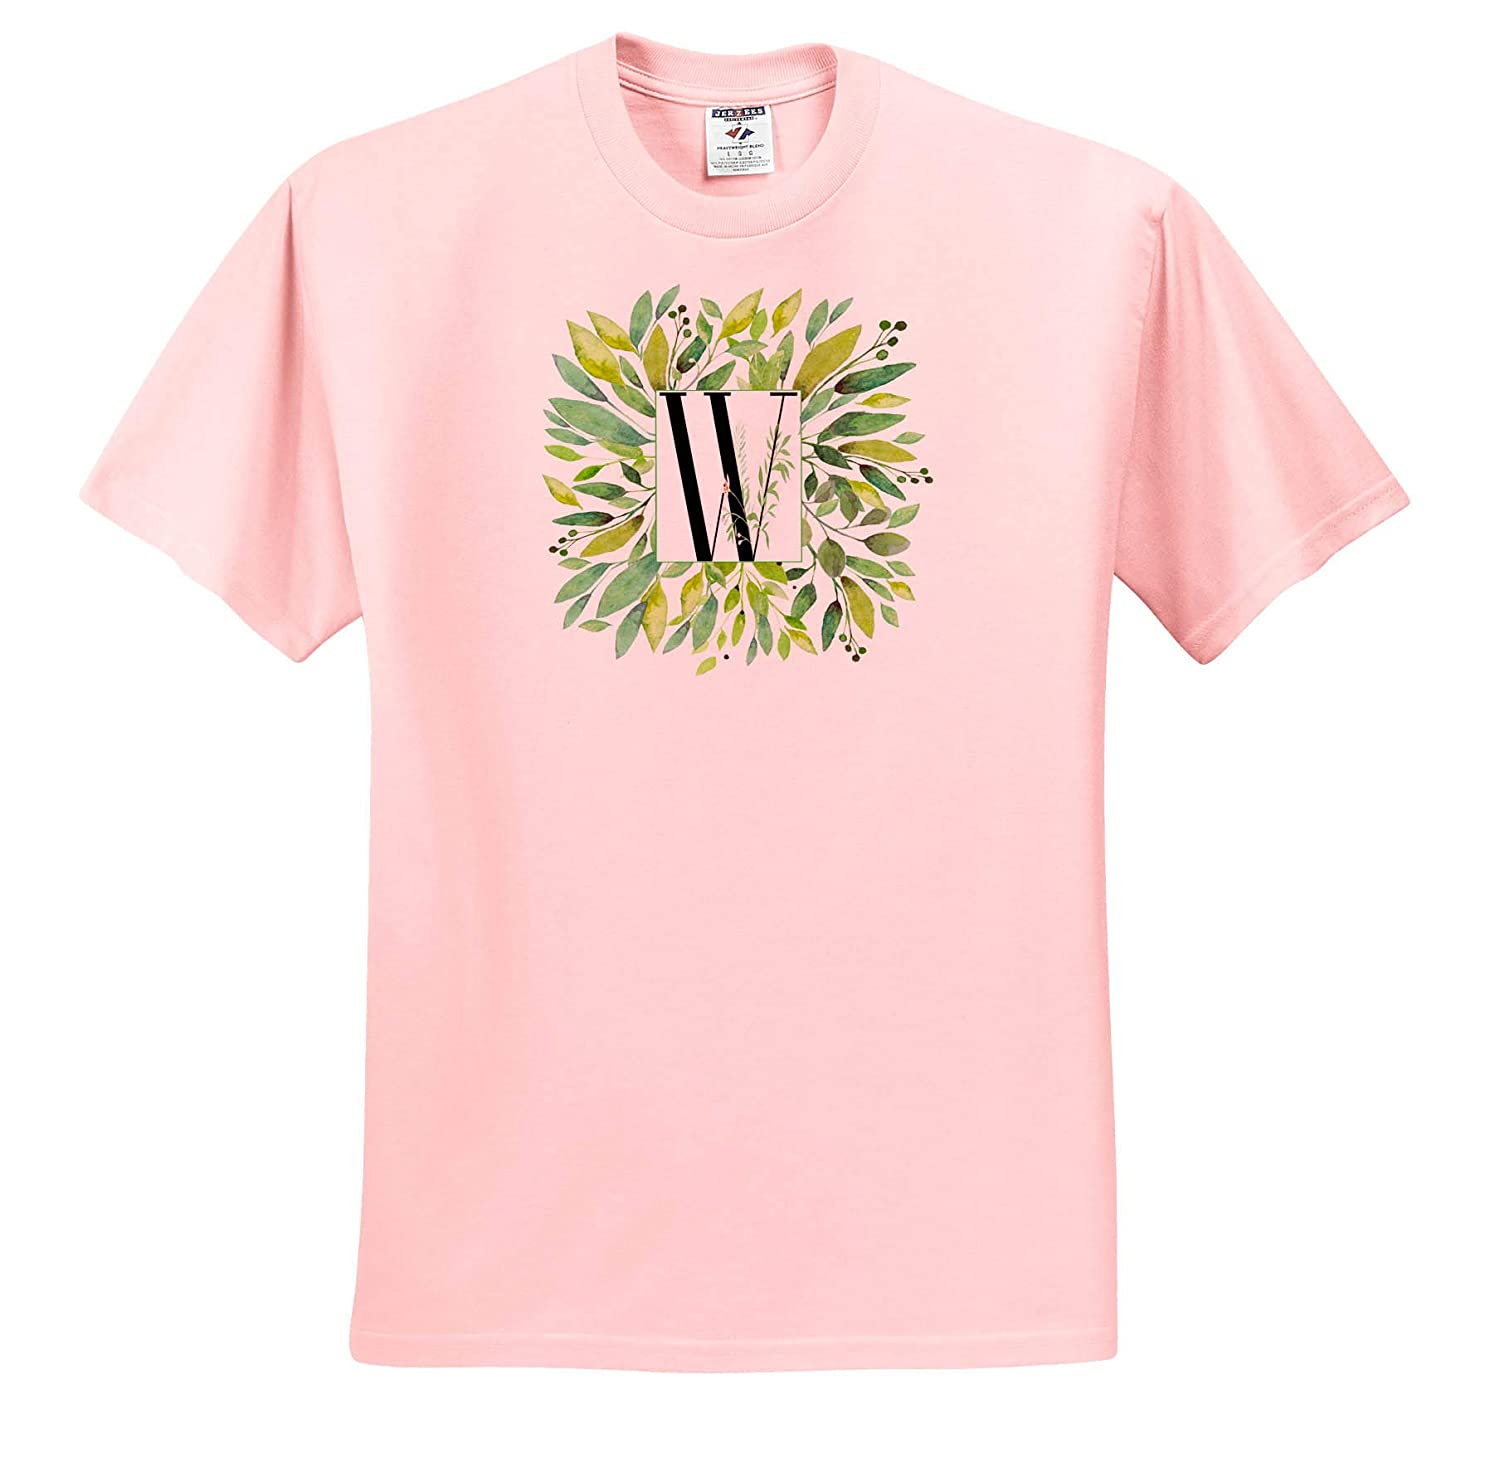 ts/_318090 Monograms Adult T-Shirt XL 3dRose Anne Marie Baugh Pretty Image of Watercolor Greenery Leaves Monogram W